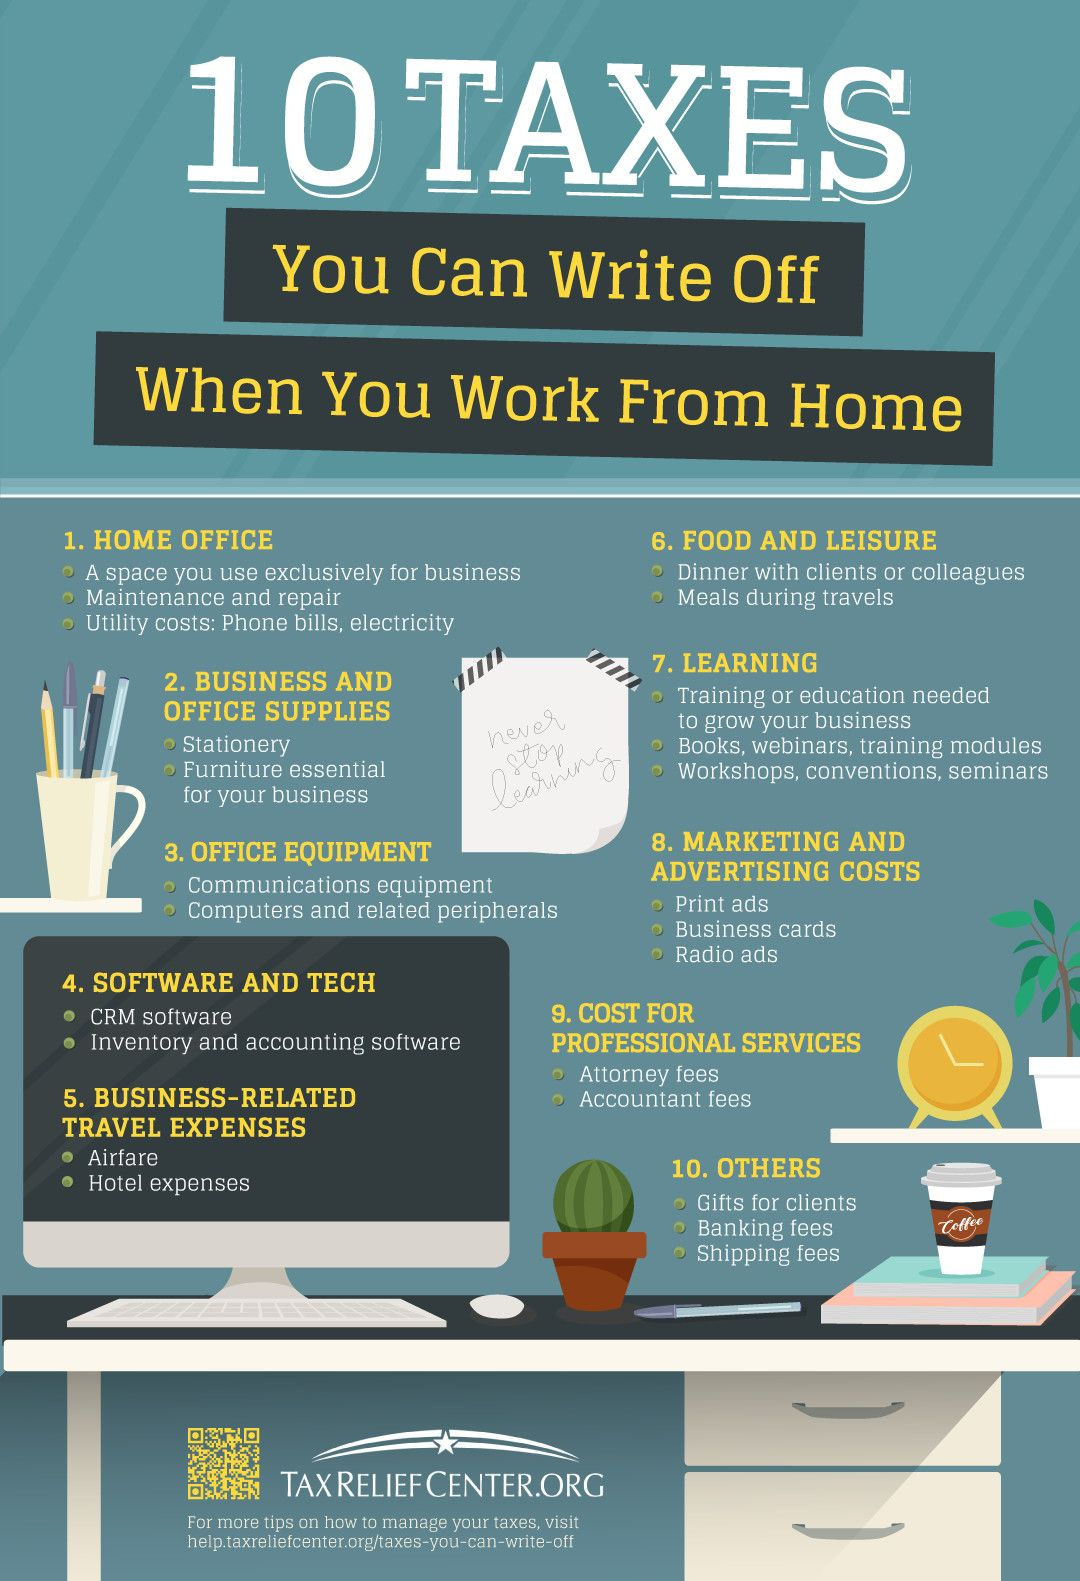 Taxes You Can Write Off When You Work From Home